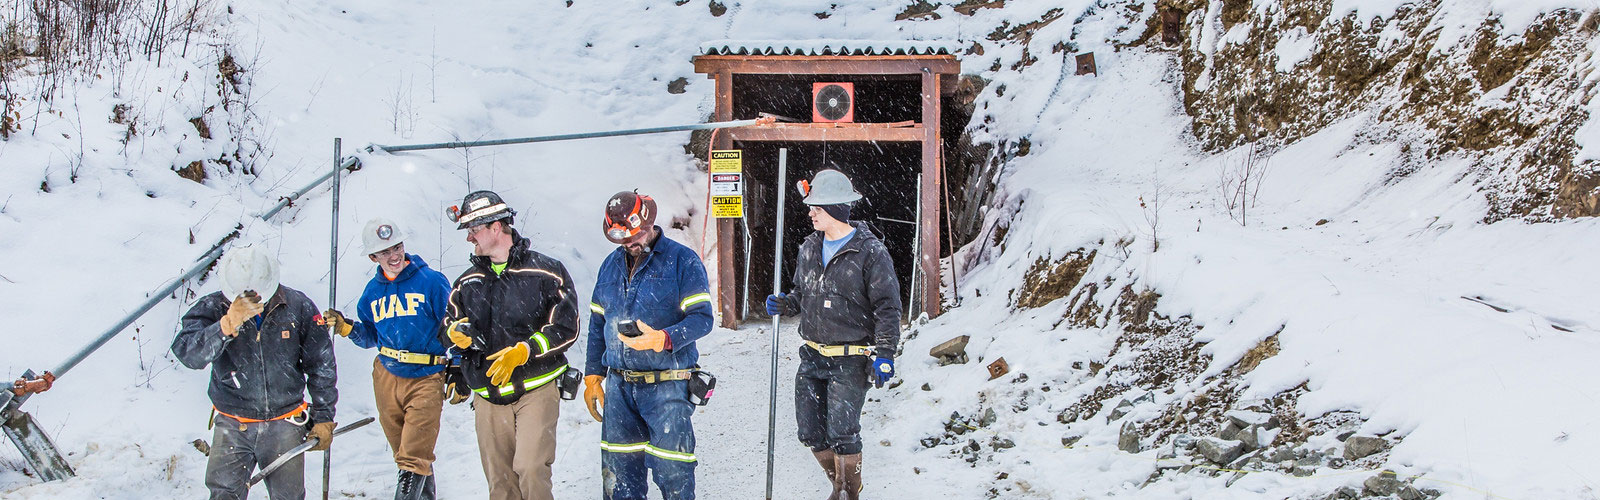 People exiting Silver Fox mine.